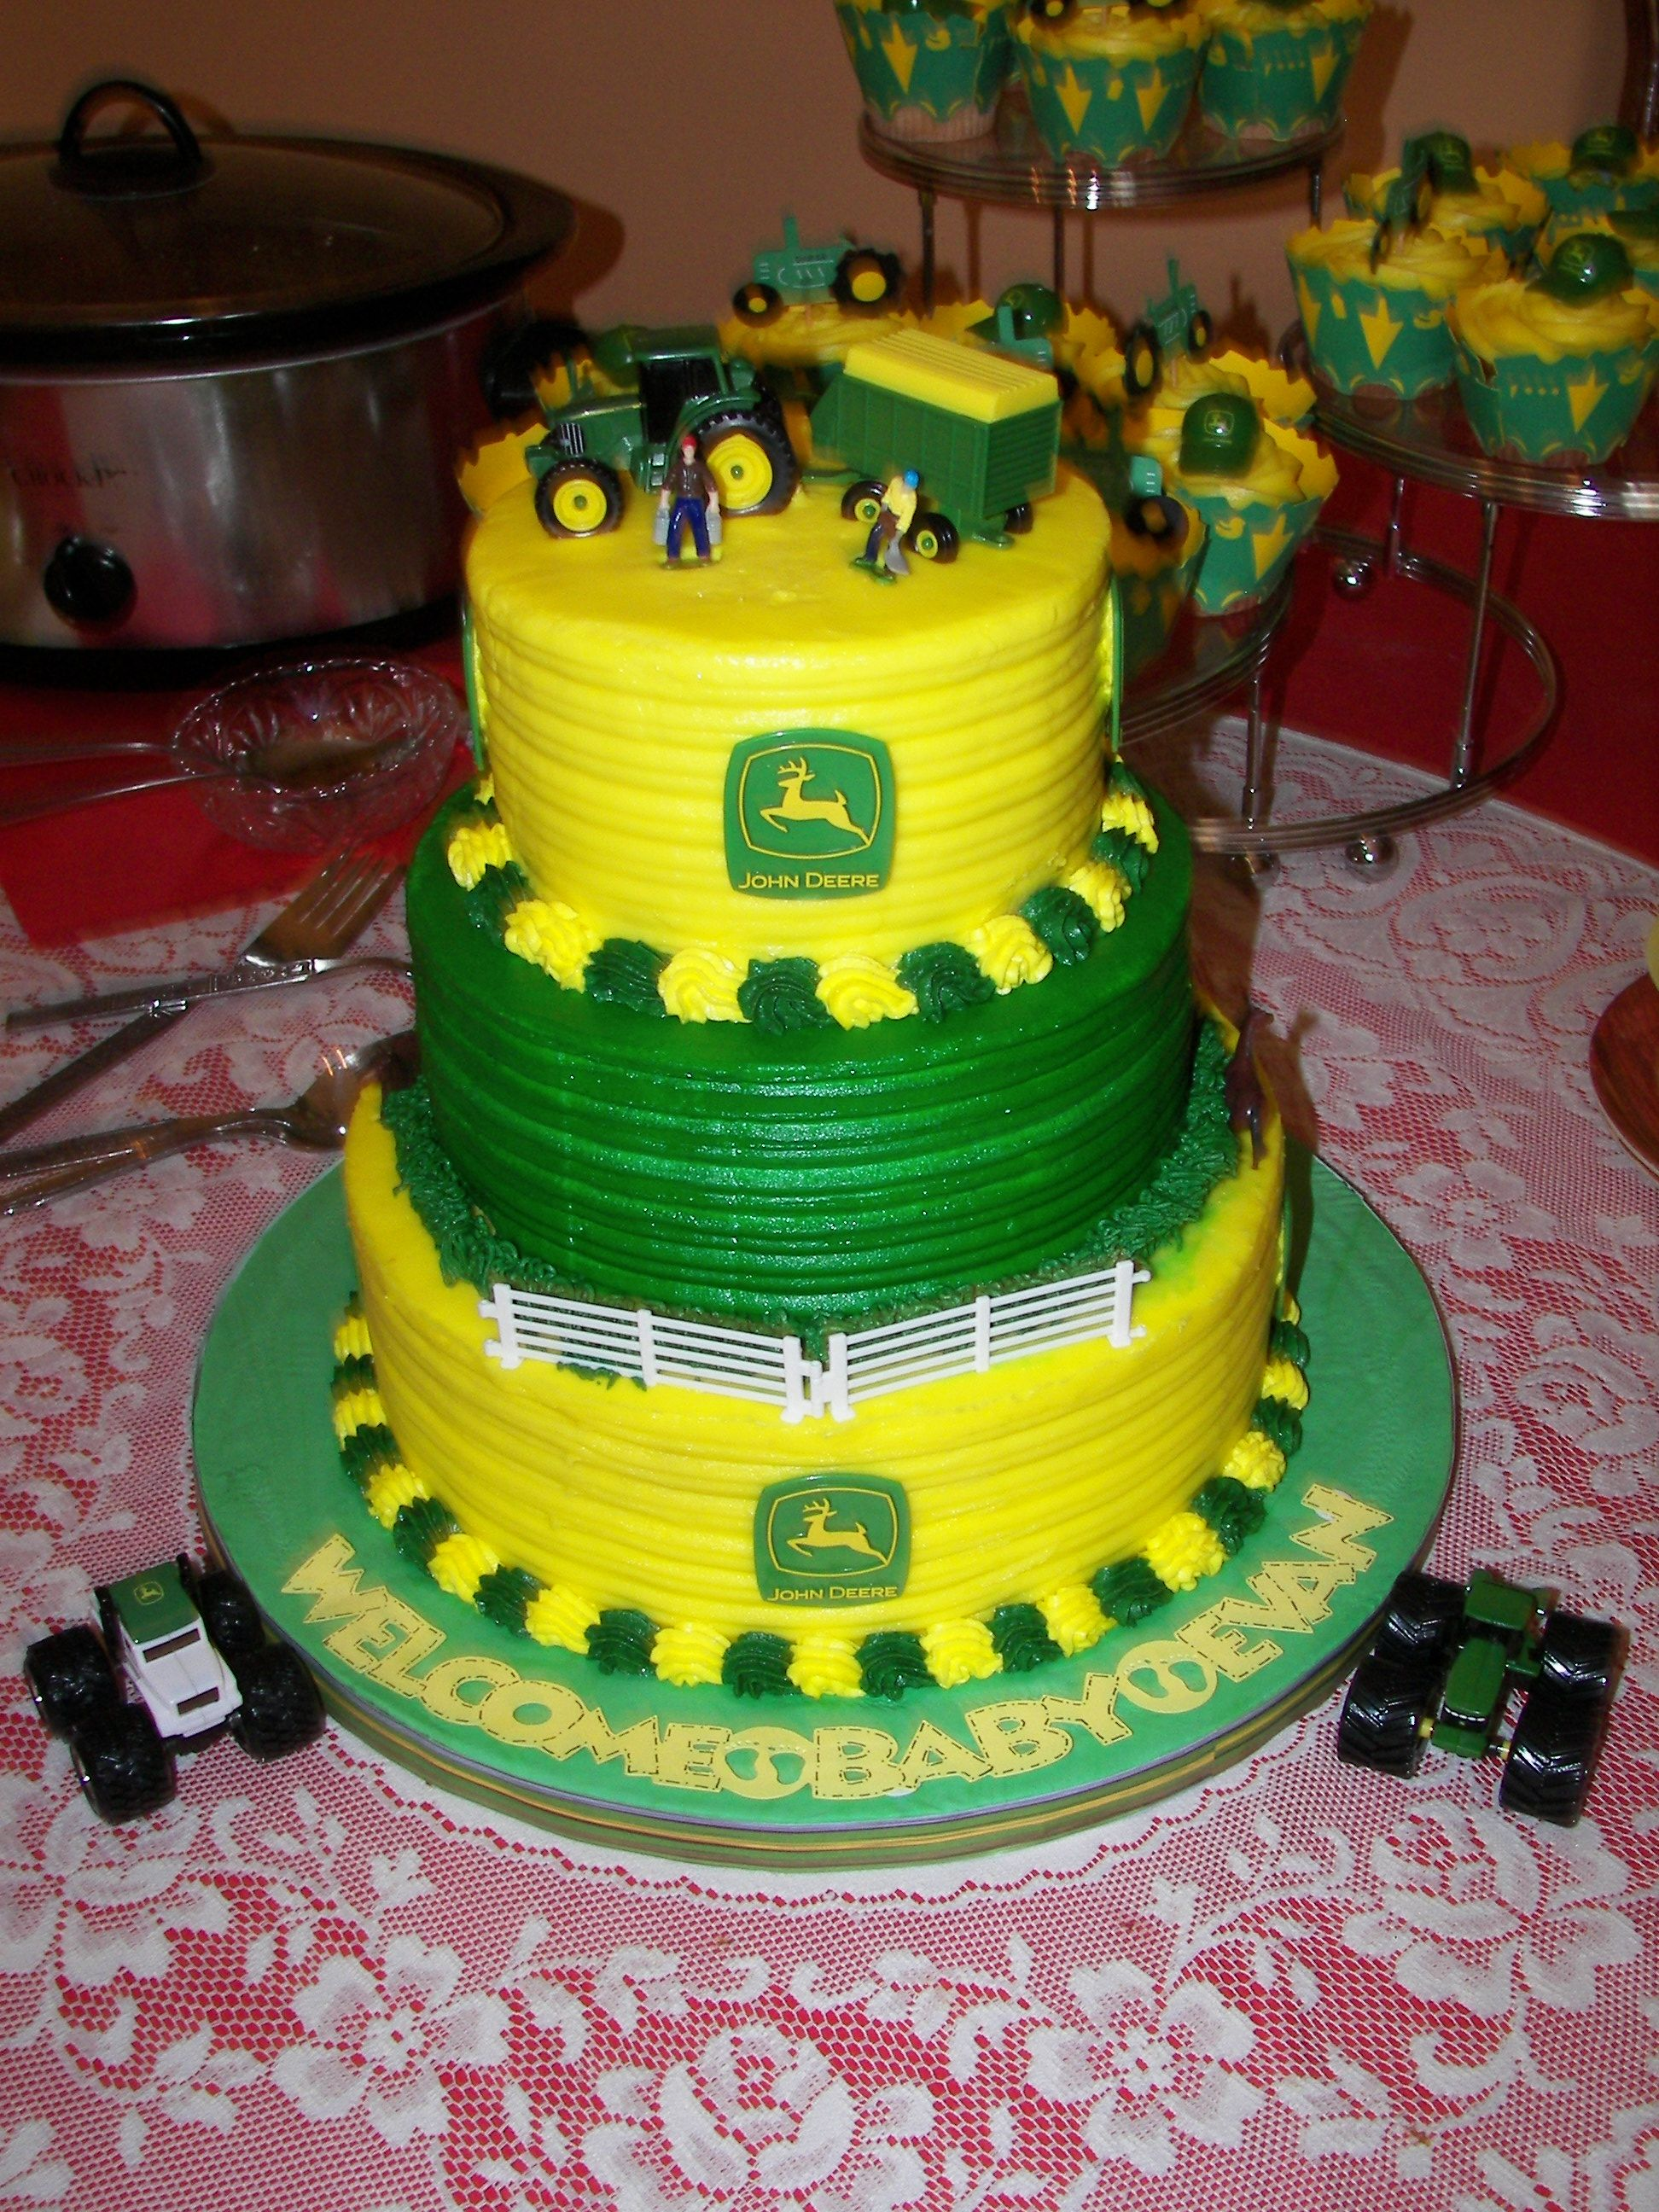 John Deere Baby Shower Cake And Cupcakes This Cake Was Made For My